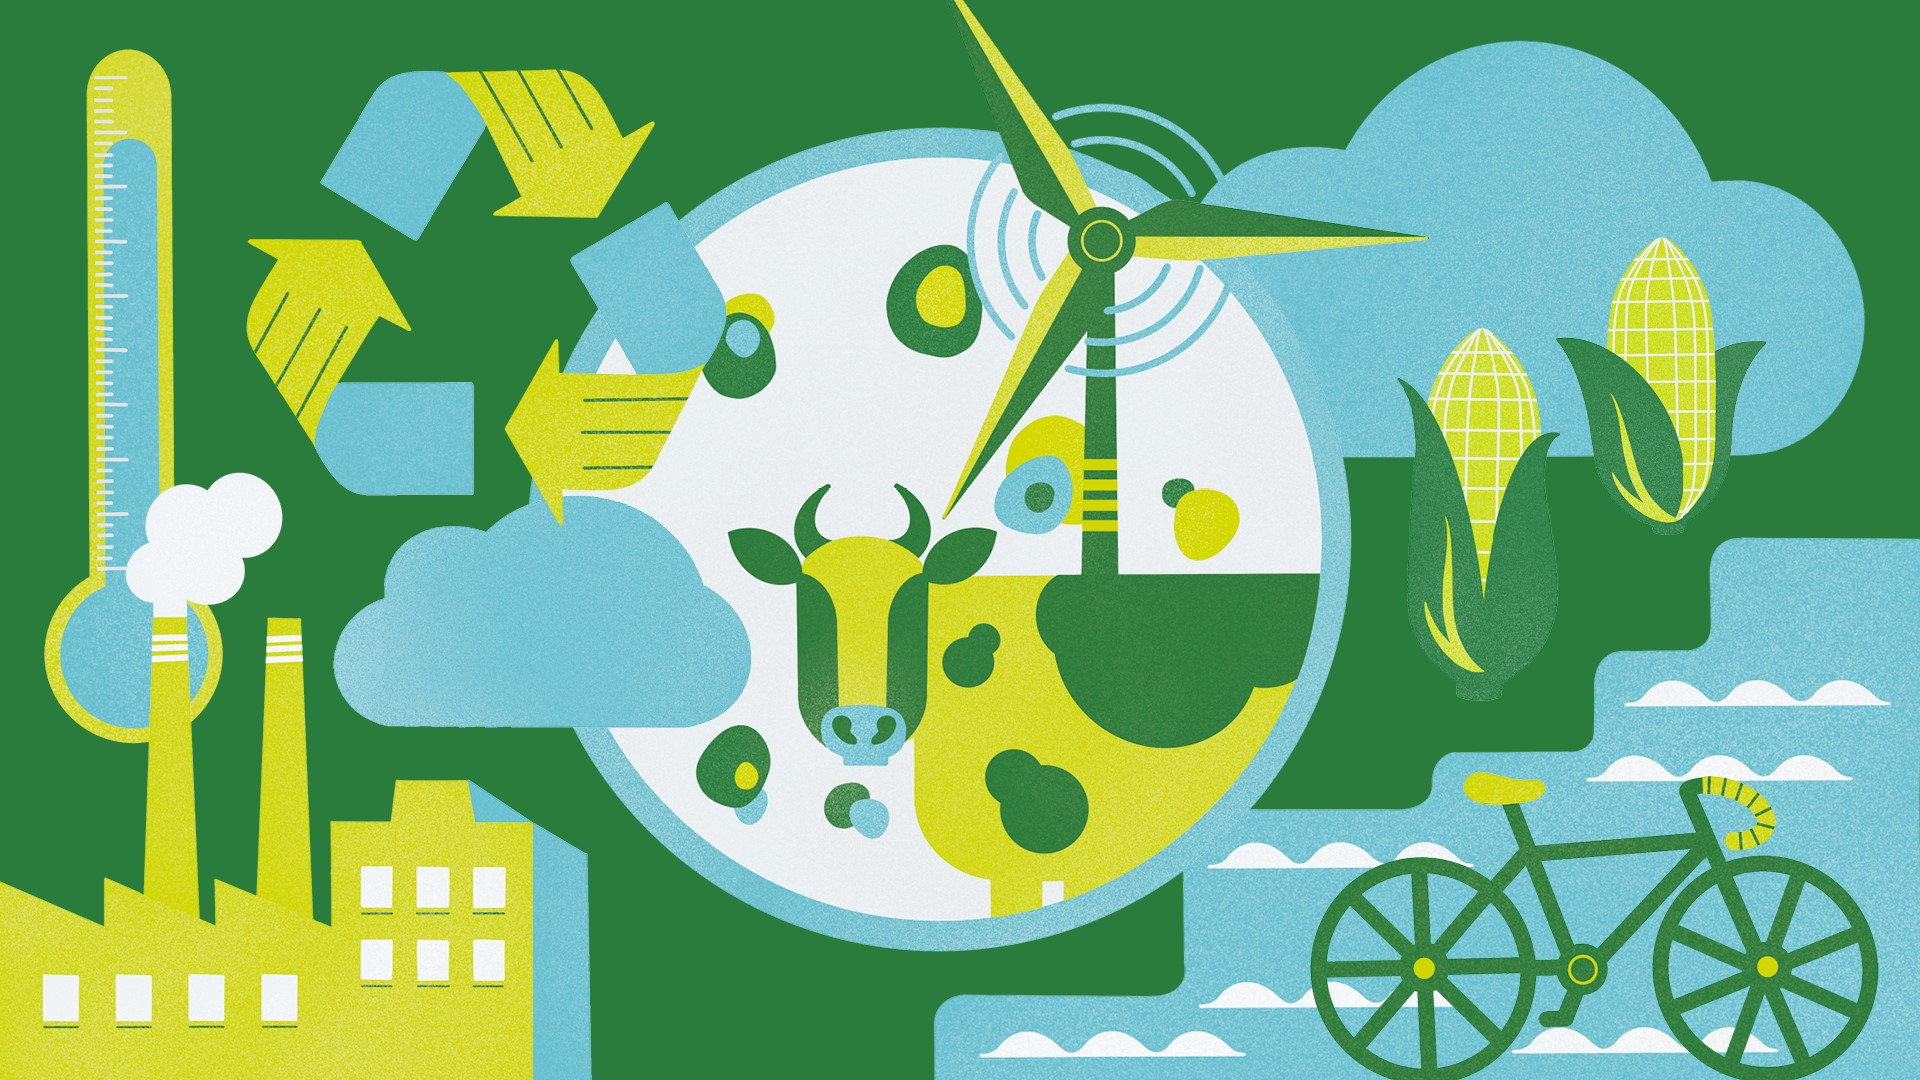 Illustrated collage of factories, a recycling symbol, a cow, a wind turbine, maize and a bicycle